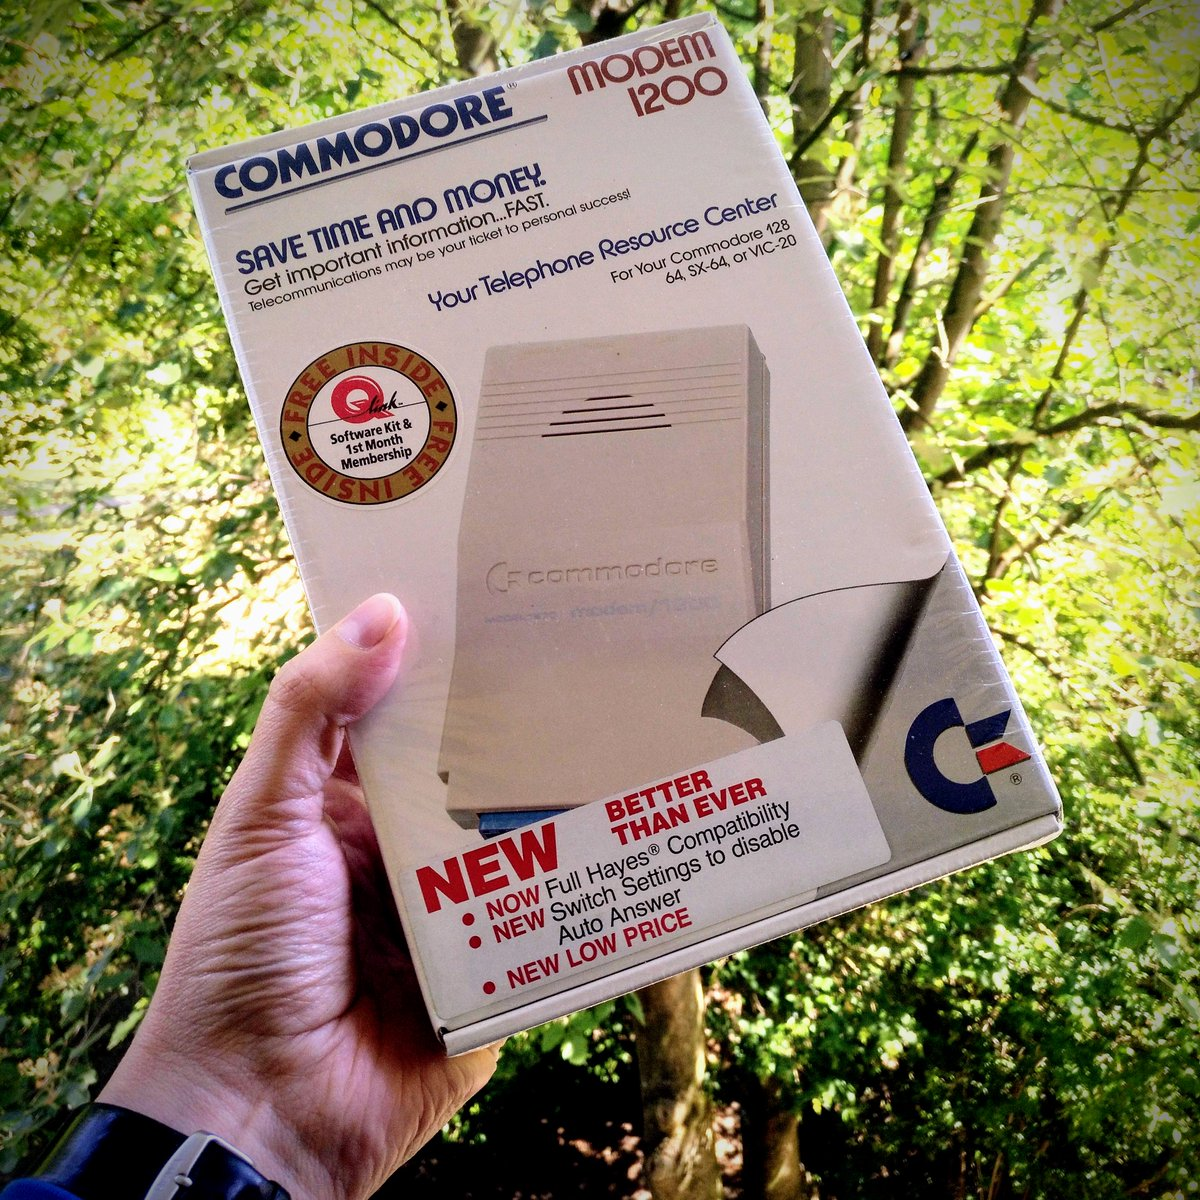 Got me a brand new and still sealed #commodore modem. Why? Because it's better than ever ... and it comes with a free month of Quantum Link!  #retrocomputingpic.twitter.com/Bw7Fw521tE